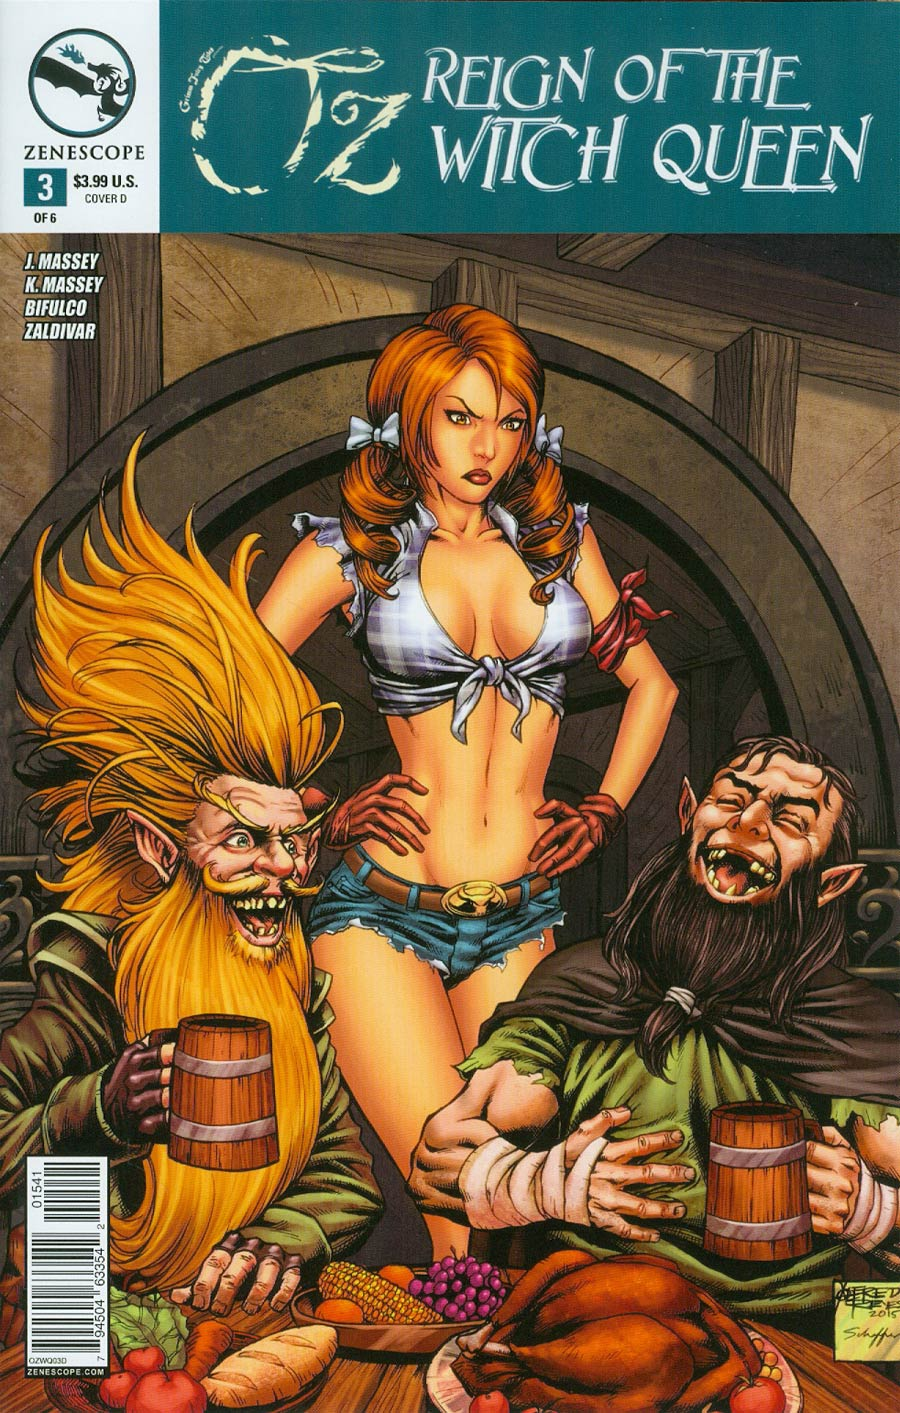 Grimm Fairy Tales Presents Oz Reign Of The Witch Queen #3 Cover D Alfredo Reyes